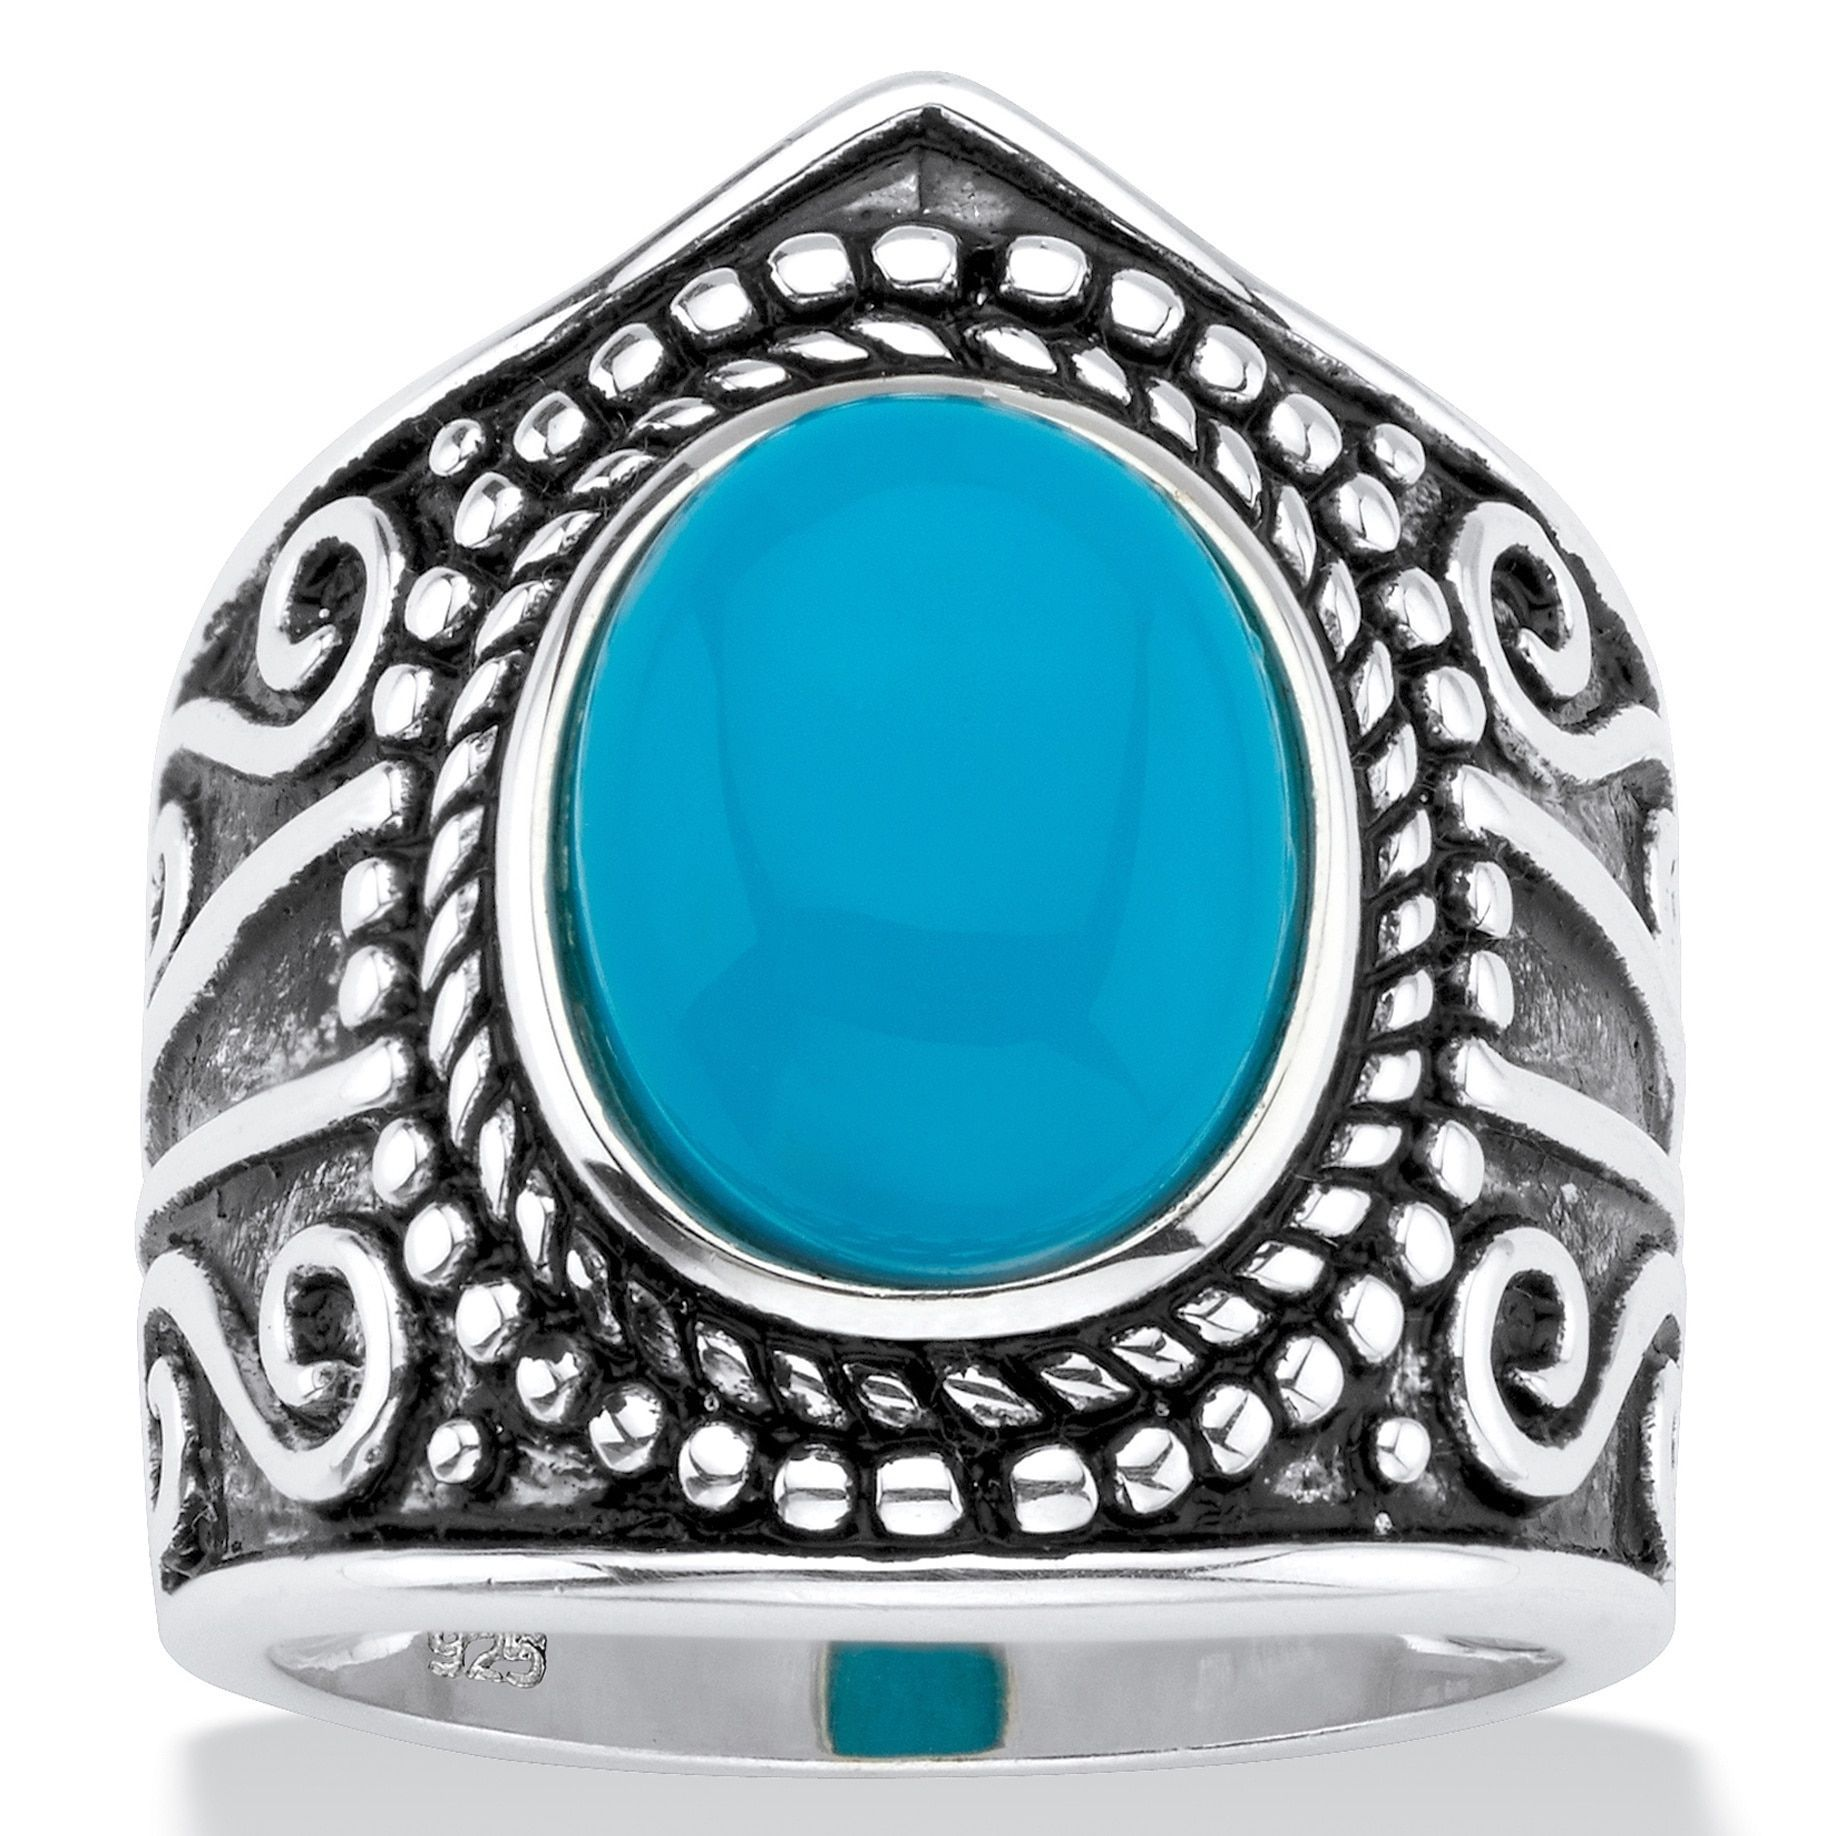 Palm Beach Jewelry Oval-Cut Simulated Blue Turquoise Cabochon Boho Beaded Cocktail Ring in Antiqued Sterling Silver Bold Fashion